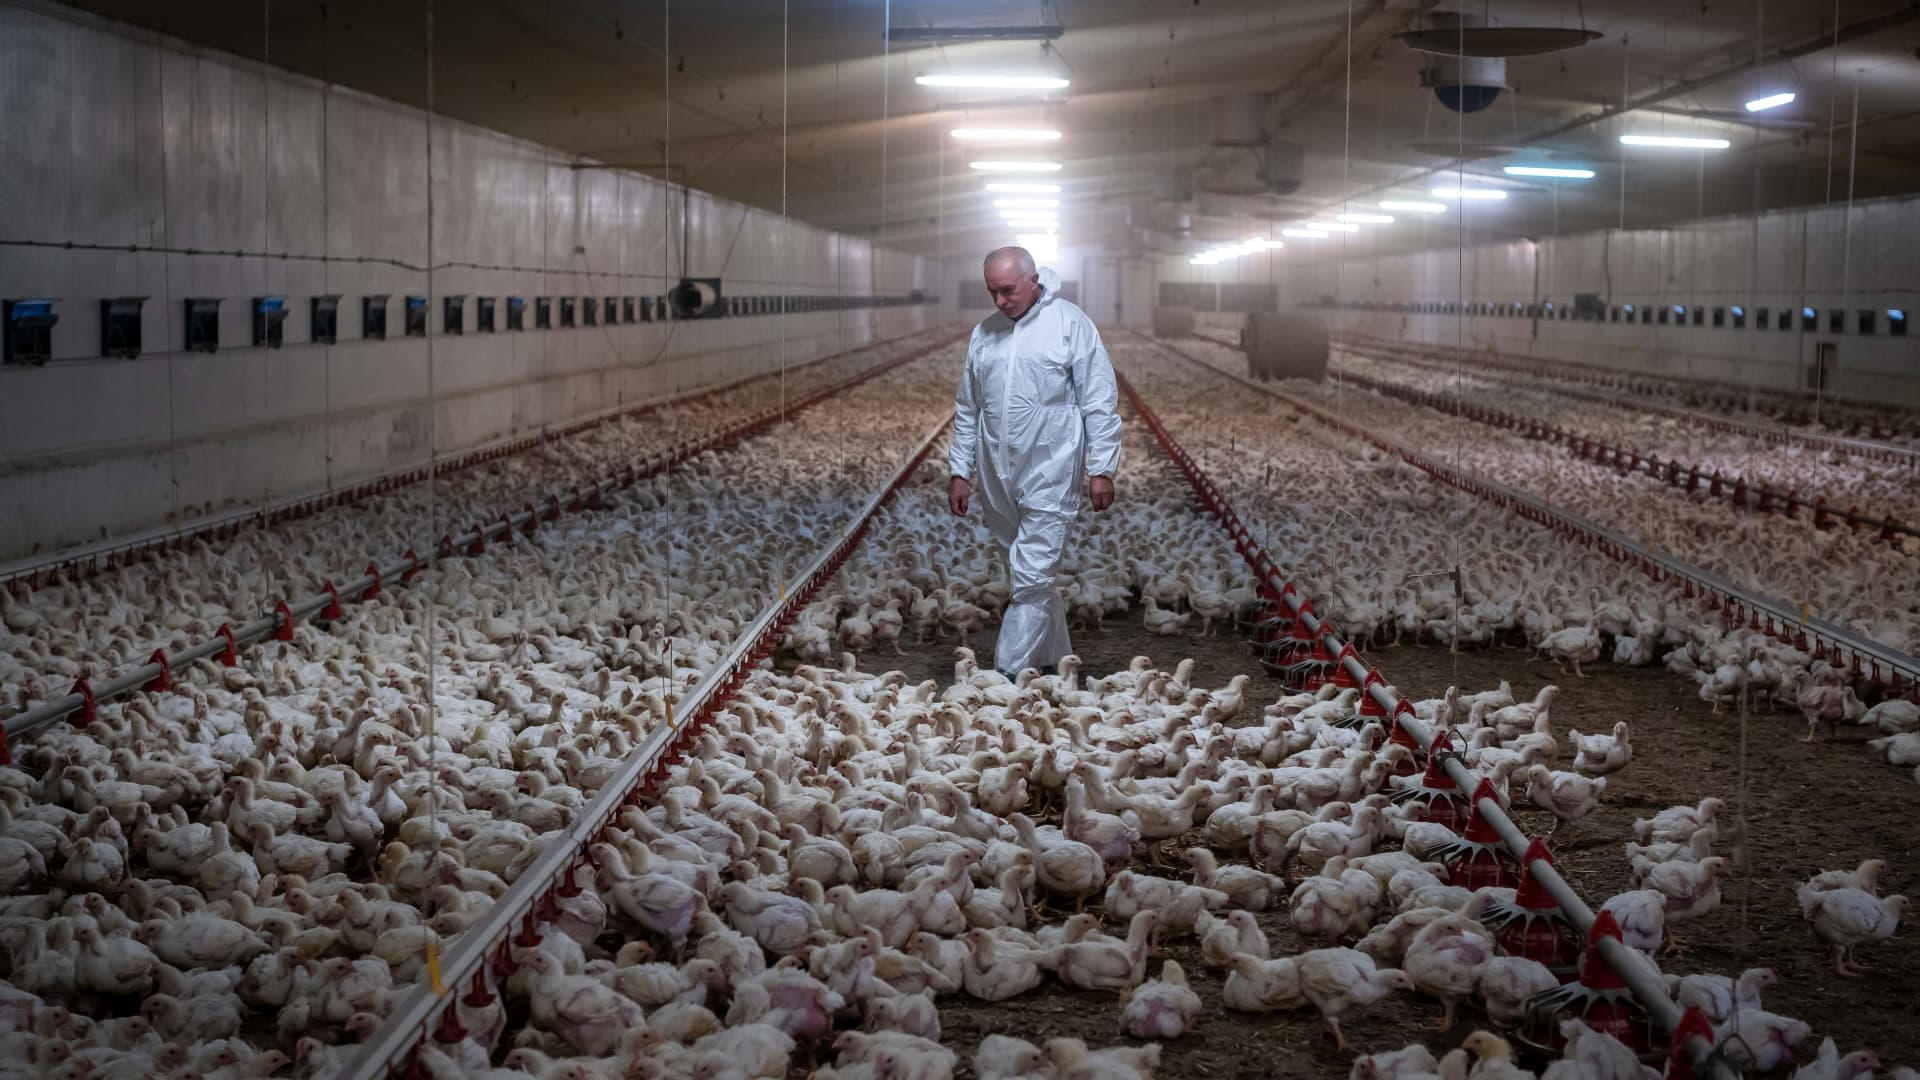 Chickens stored indoors in a meat production facility